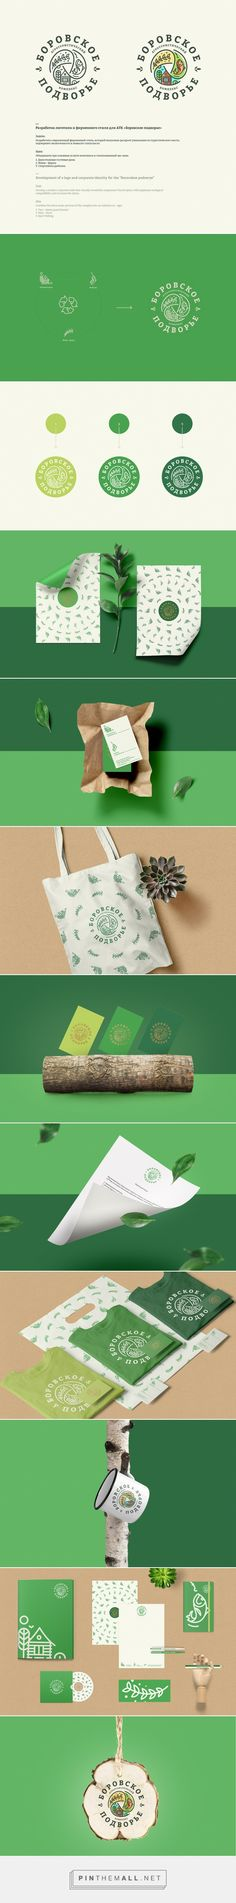 Borovskoe Podvorye Tourist Complex Branding by Alex Smart | Fivestar Branding Agency – Design and Branding Agency & Curated Inspiration Gallery #branding #brand #design #designinspiration